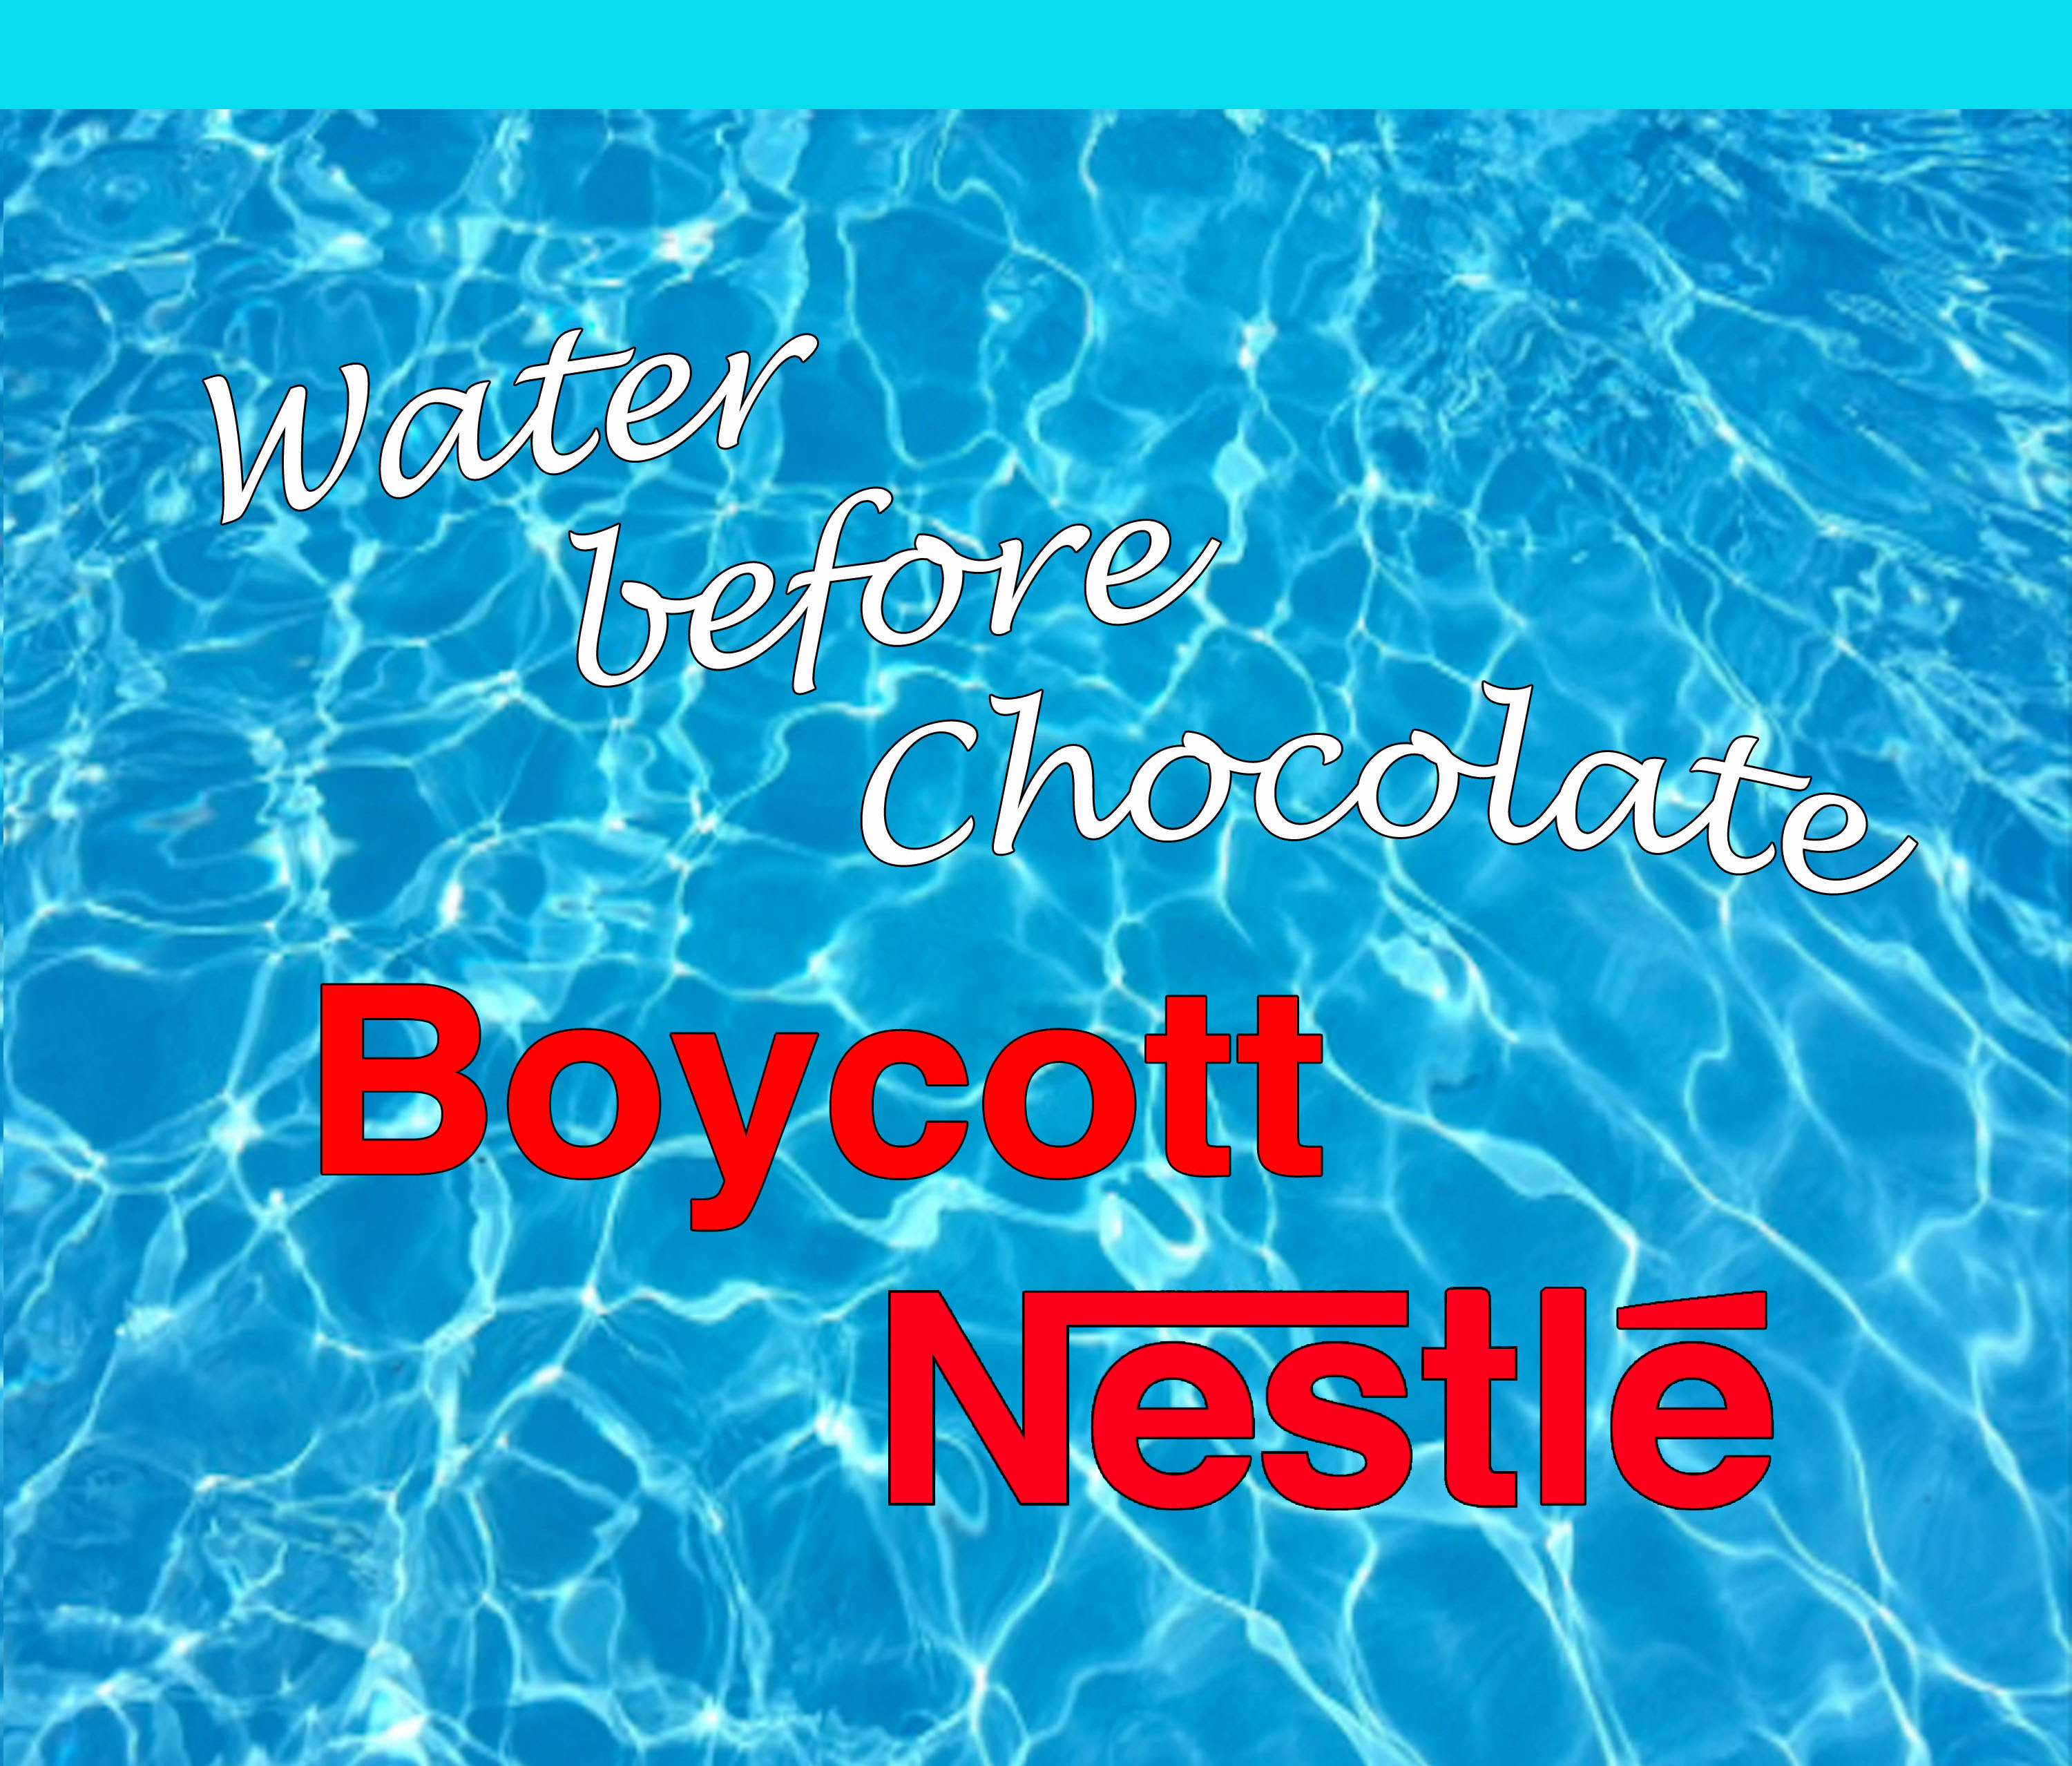 boycott Nestle shirr